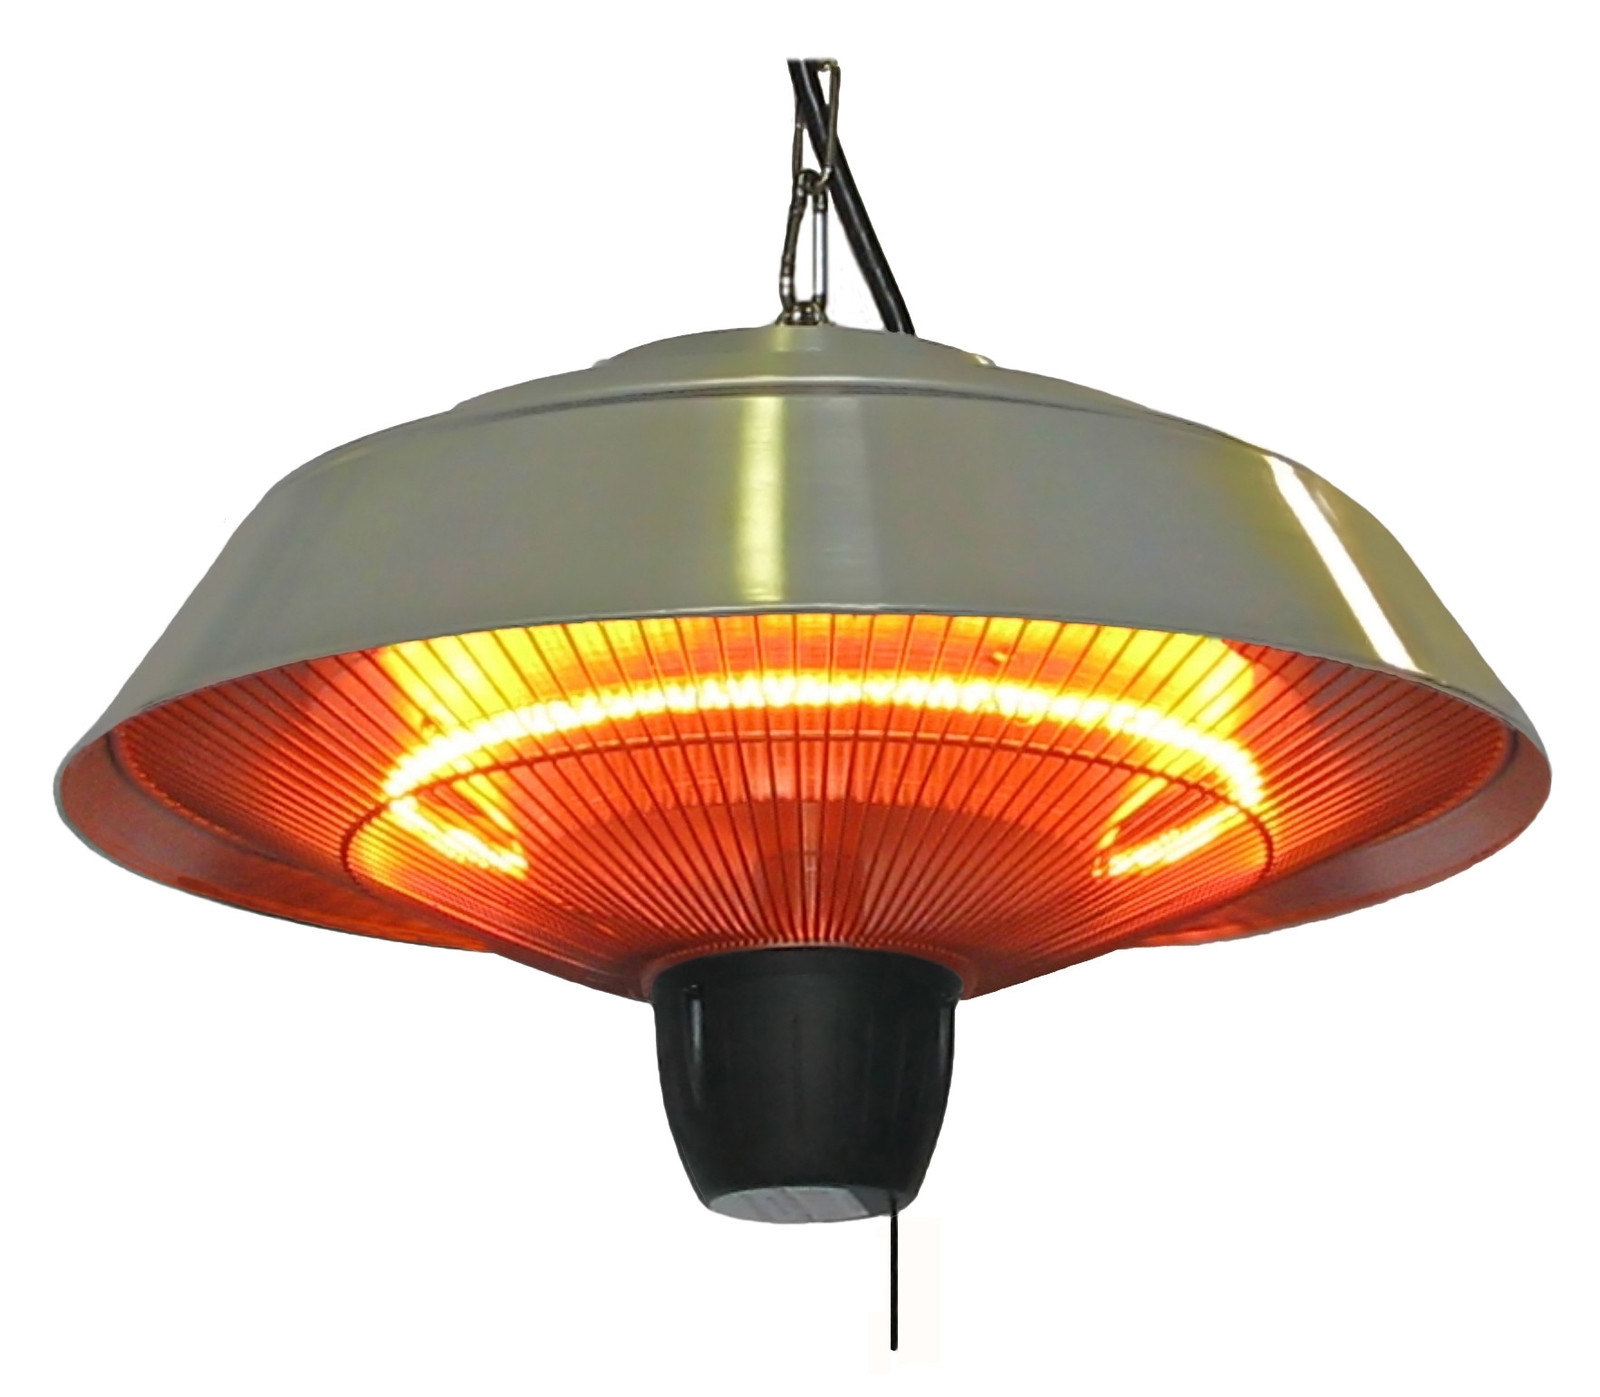 Outdoor Heating Lamp Ideas : How To Buy Outdoor Heat Lamps – Home Pertaining To Outdoor Hanging Heat Lamps (#7 of 15)